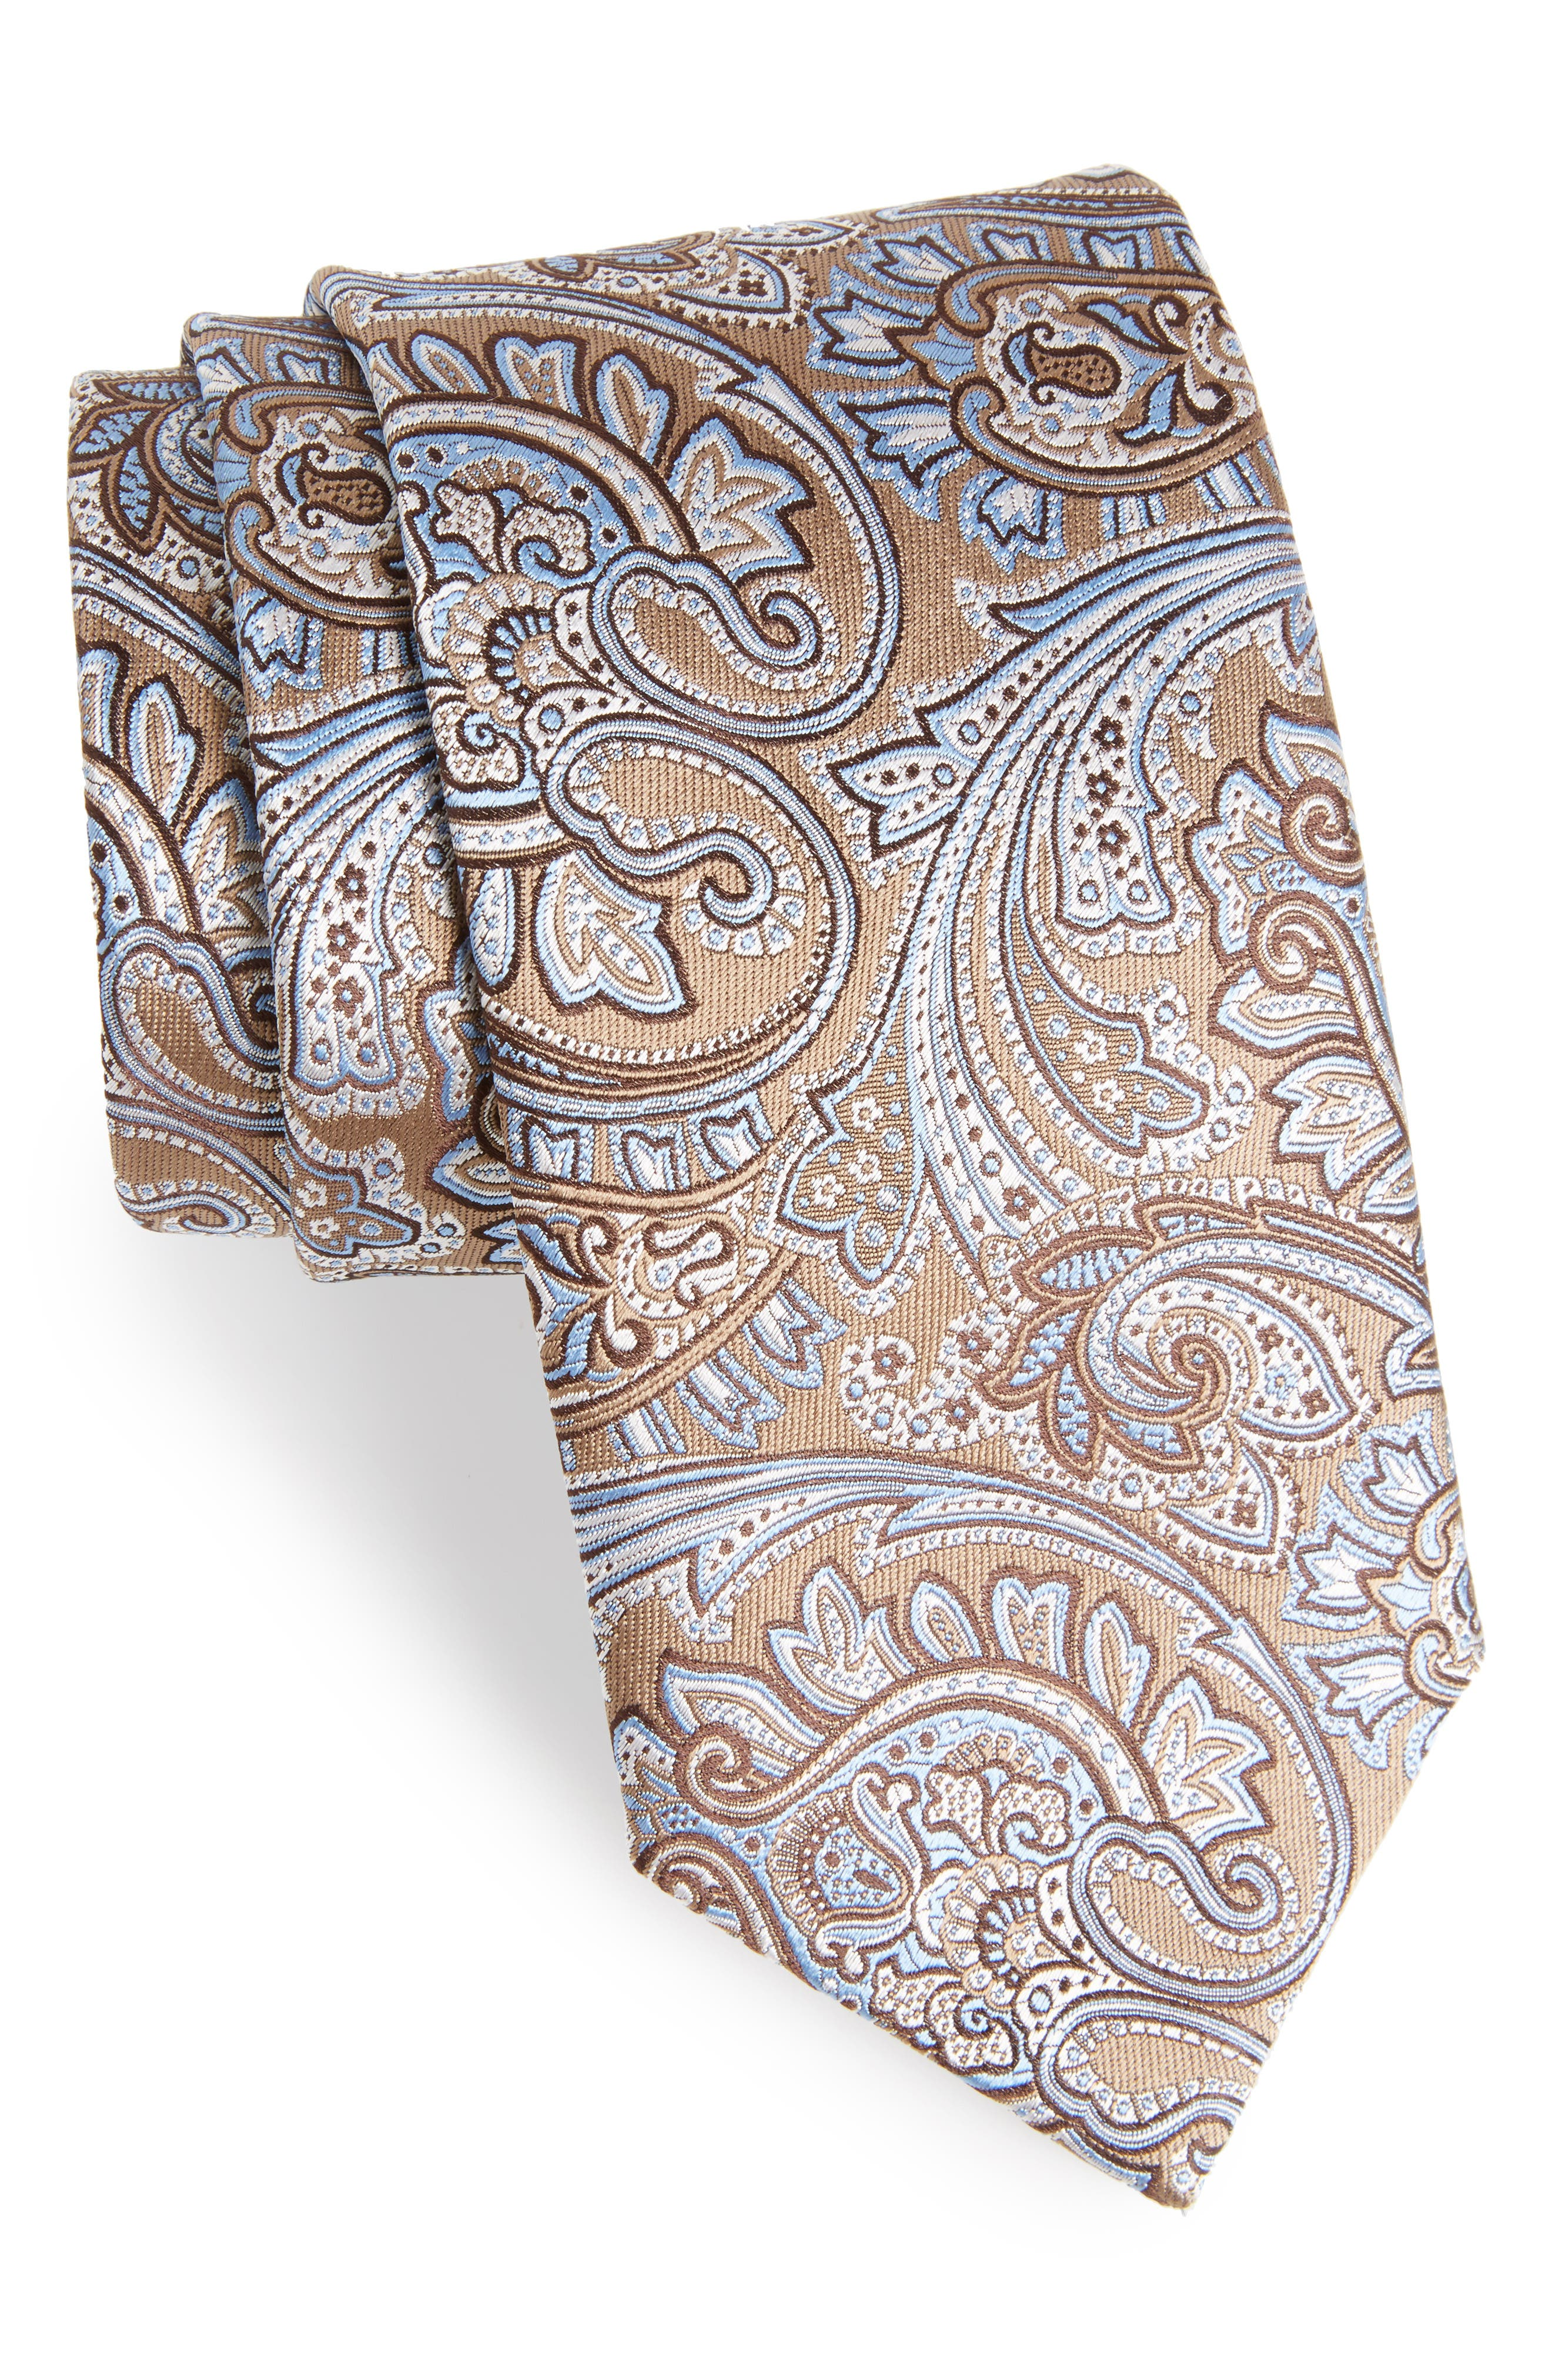 Paisley Silk Tie,                             Main thumbnail 1, color,                             292